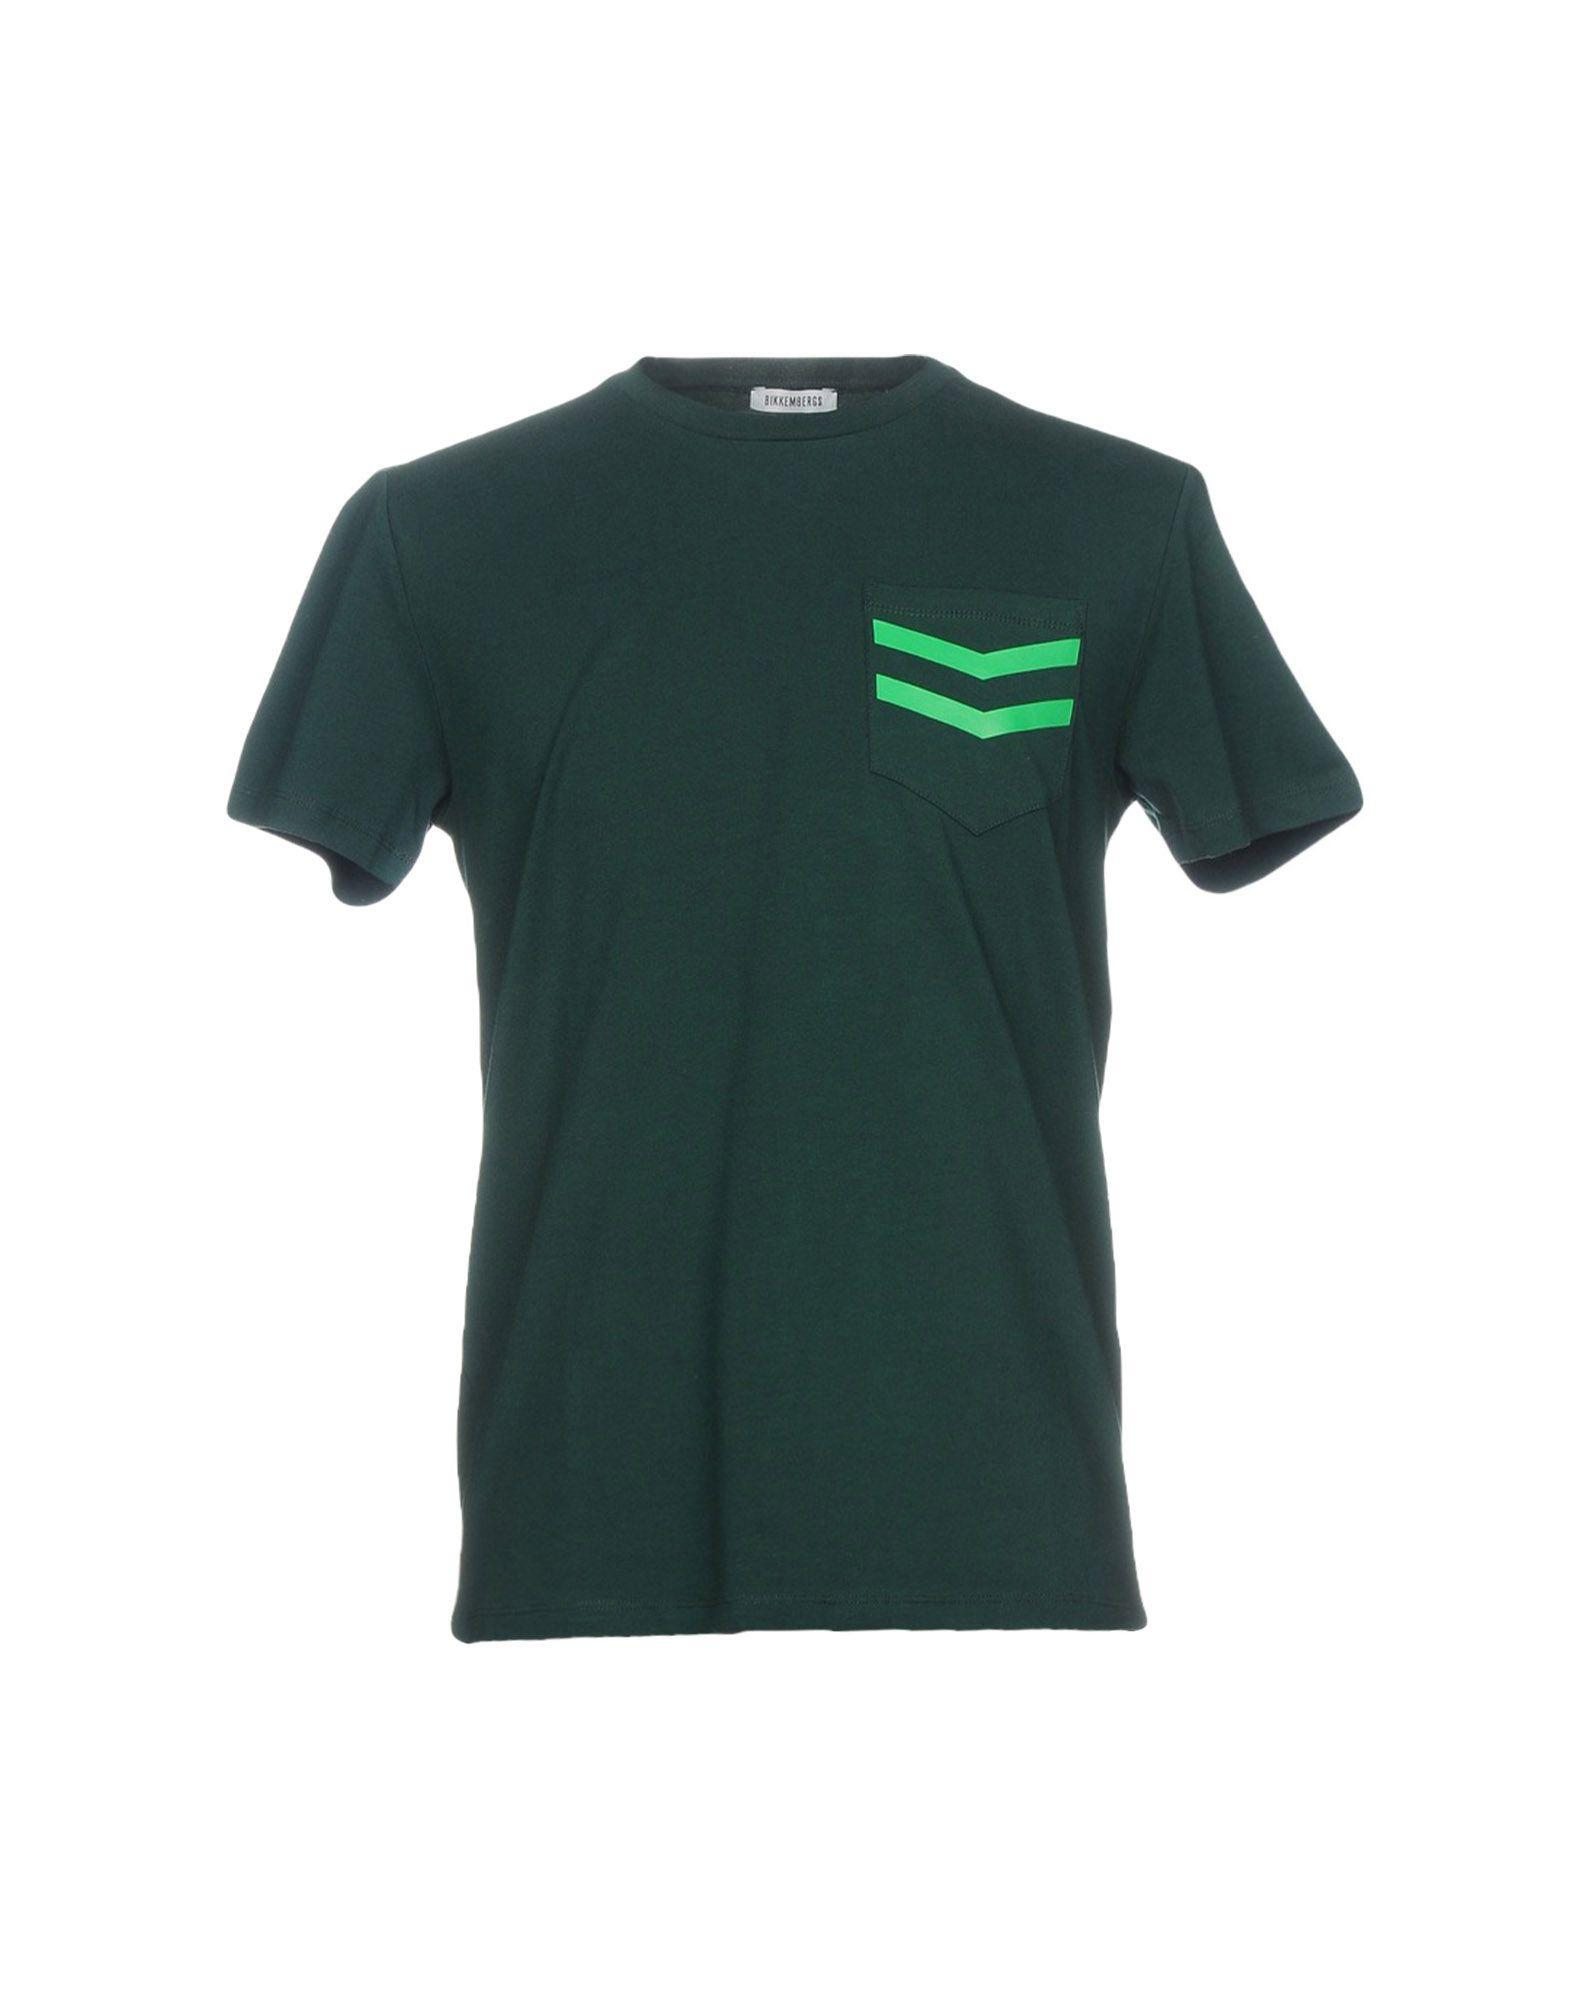 Bikkembergs T-shirt In Dark Green